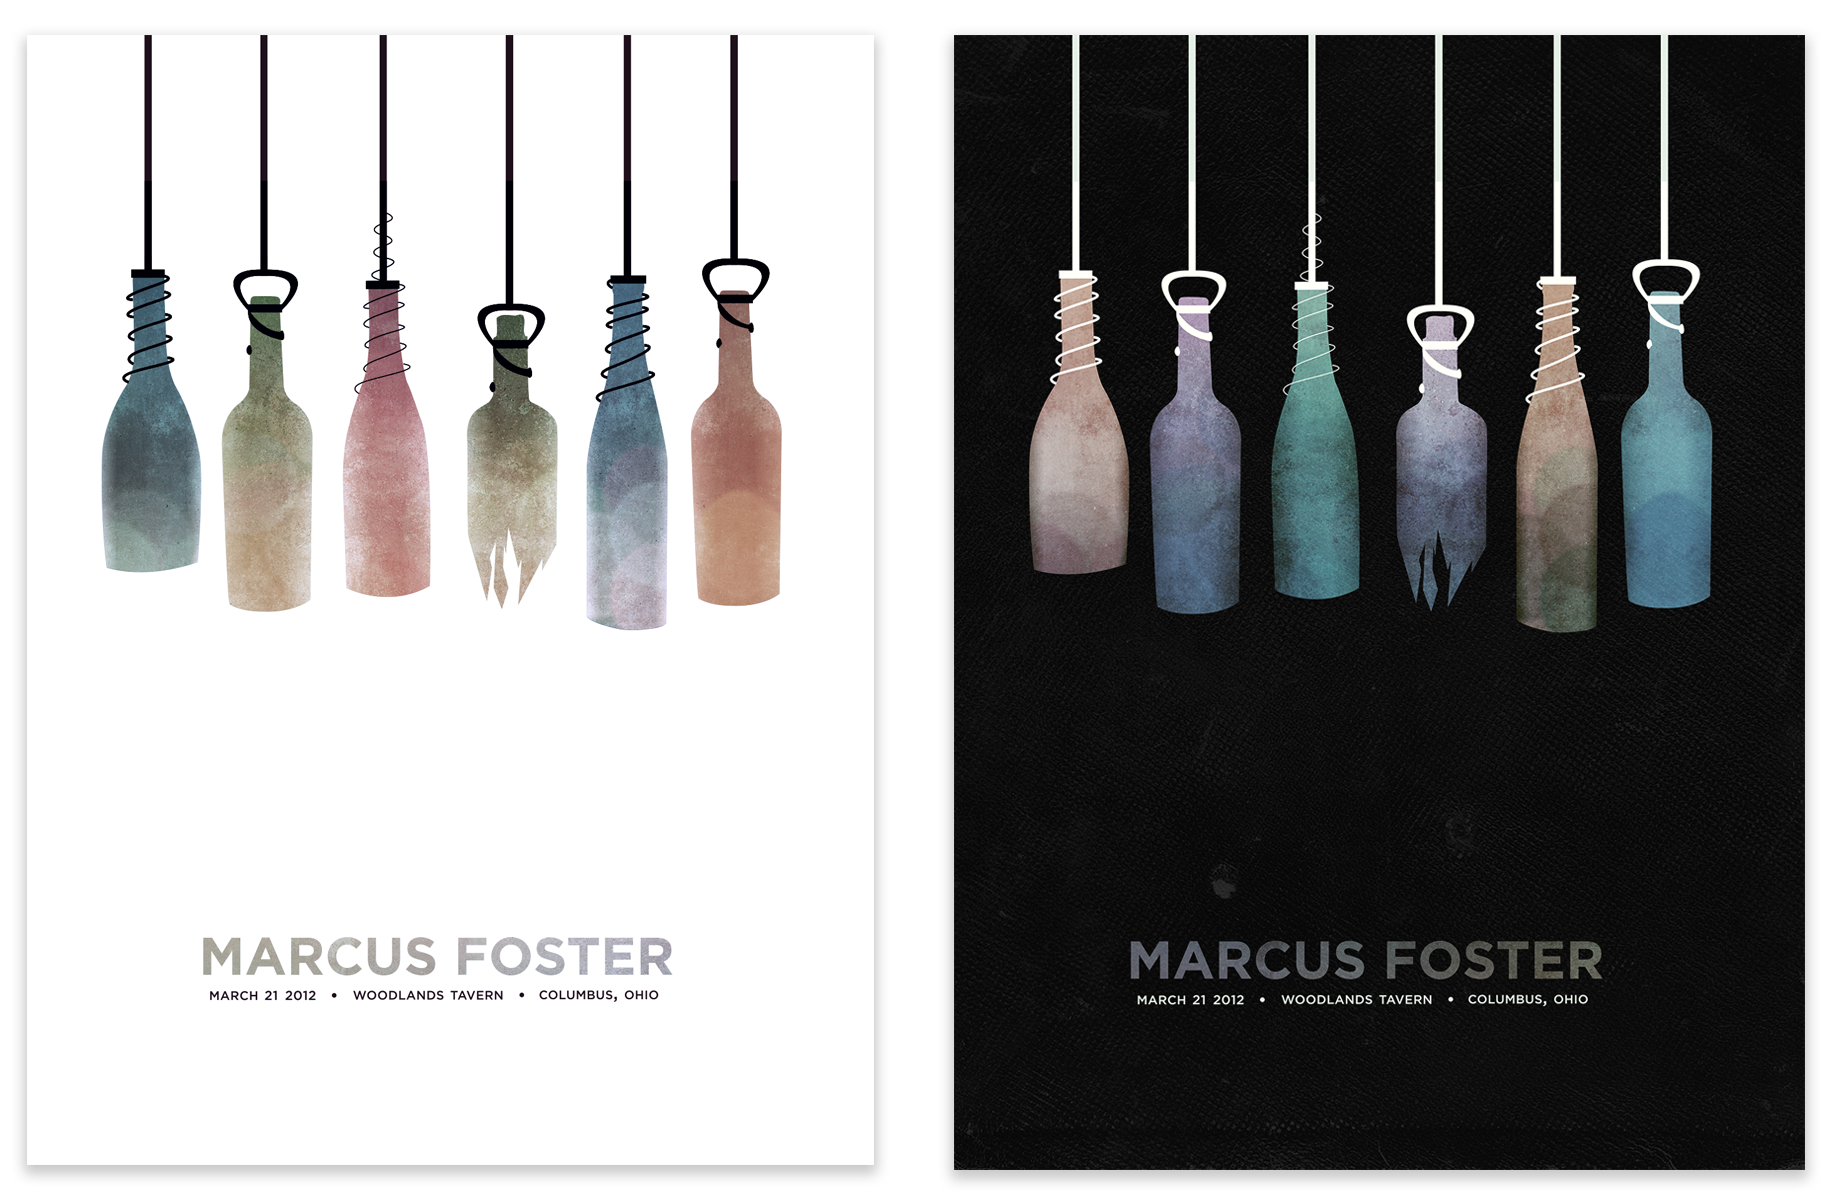 COMPLETE: Marcus Foster Gig Poster - image 13 - student project